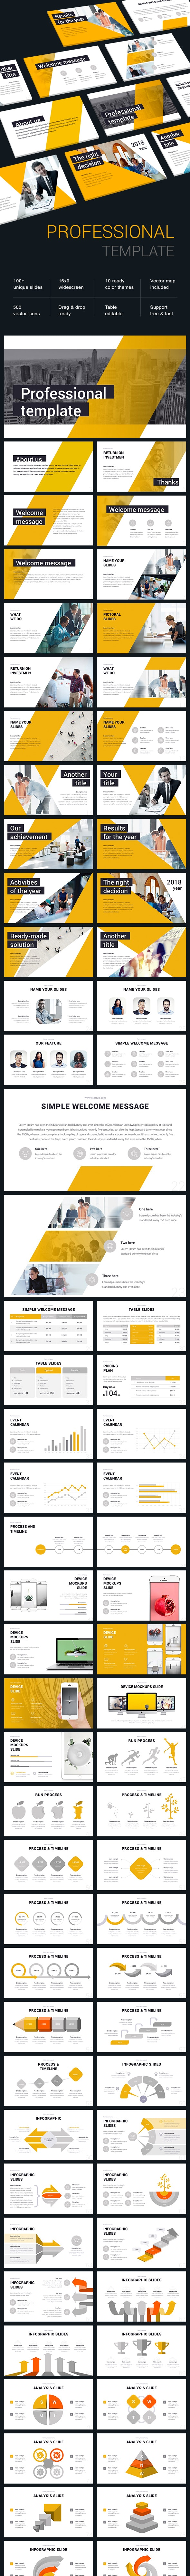 Business Professional - Business Keynote Templates